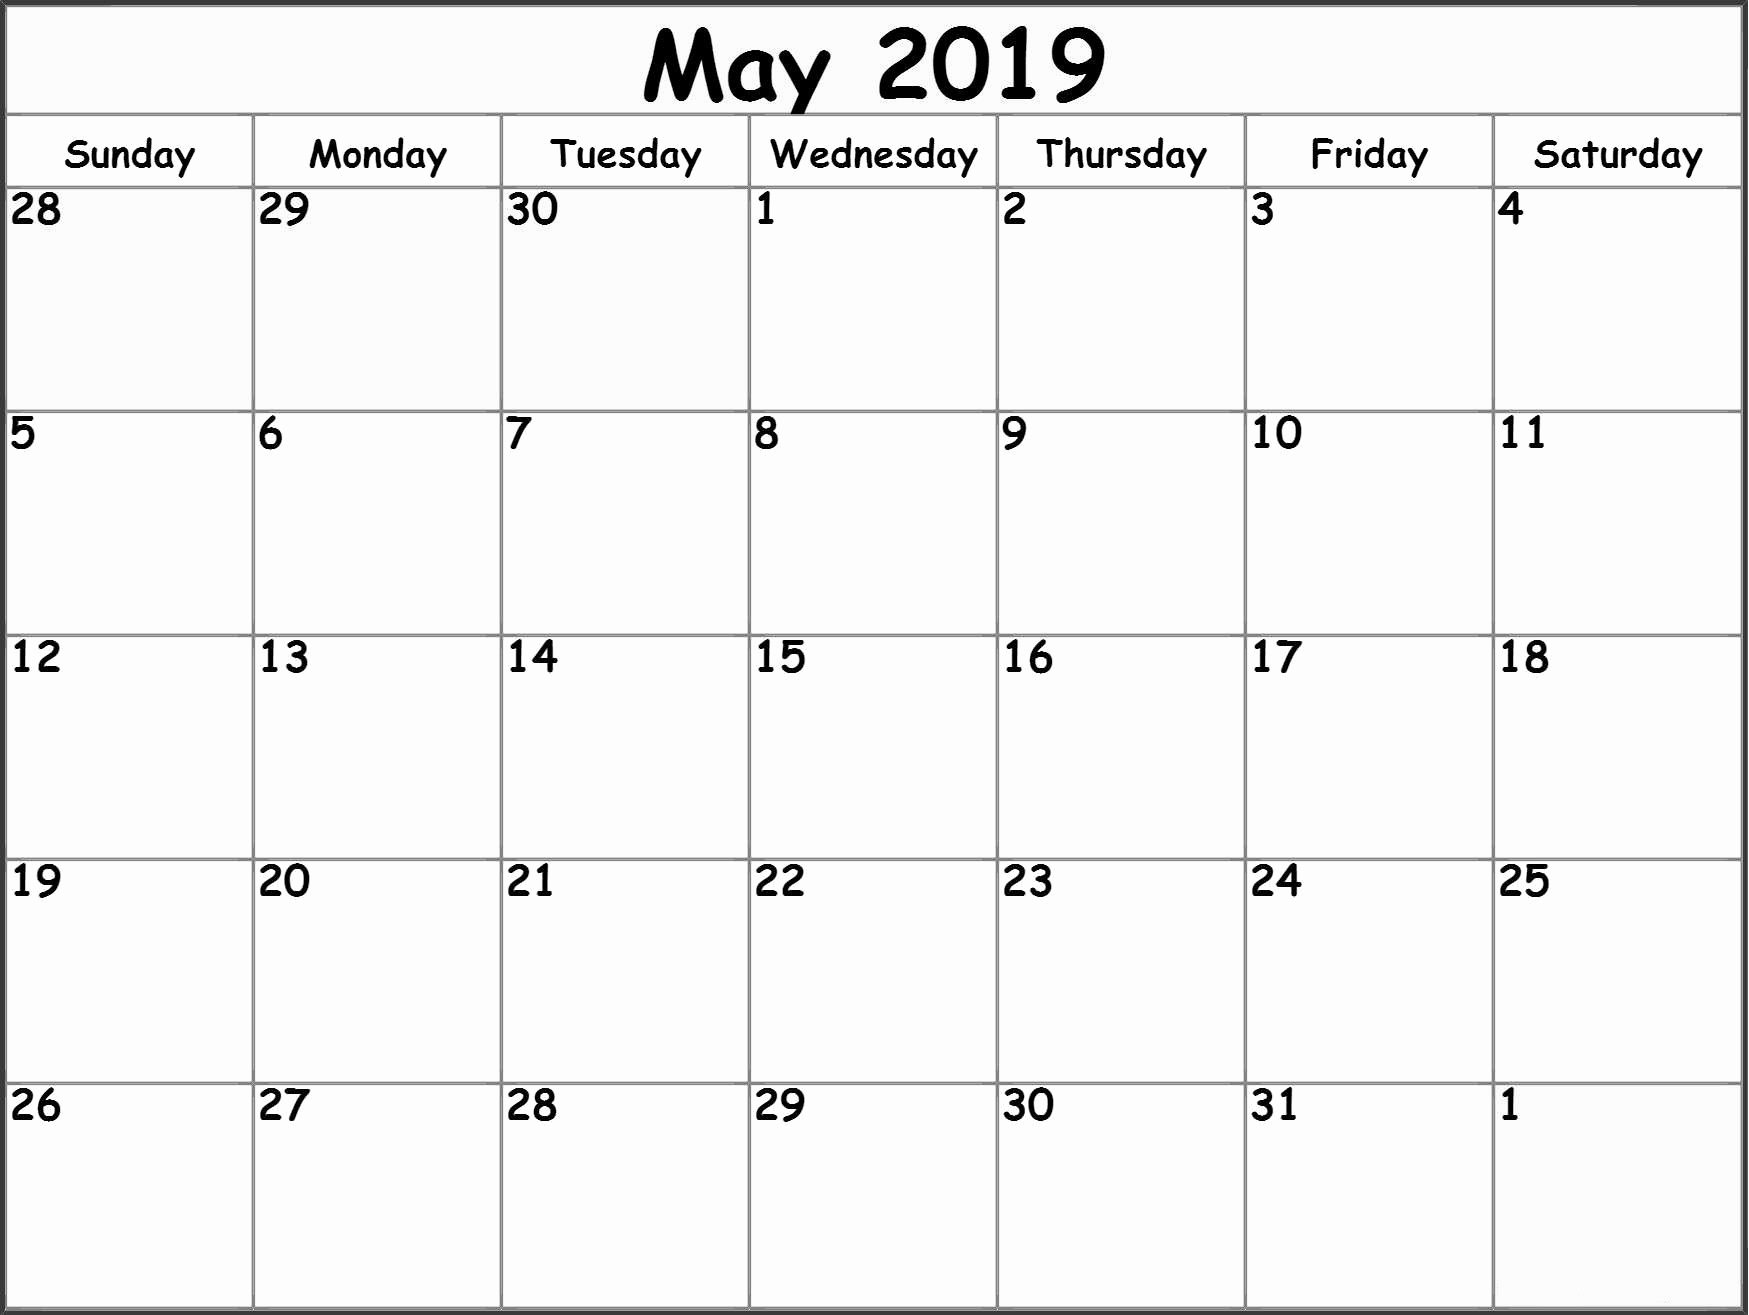 Blank Monthly Calendar Template Pdf Best Of Dashing A Blank Calendar for May 2019 • Printable Blank